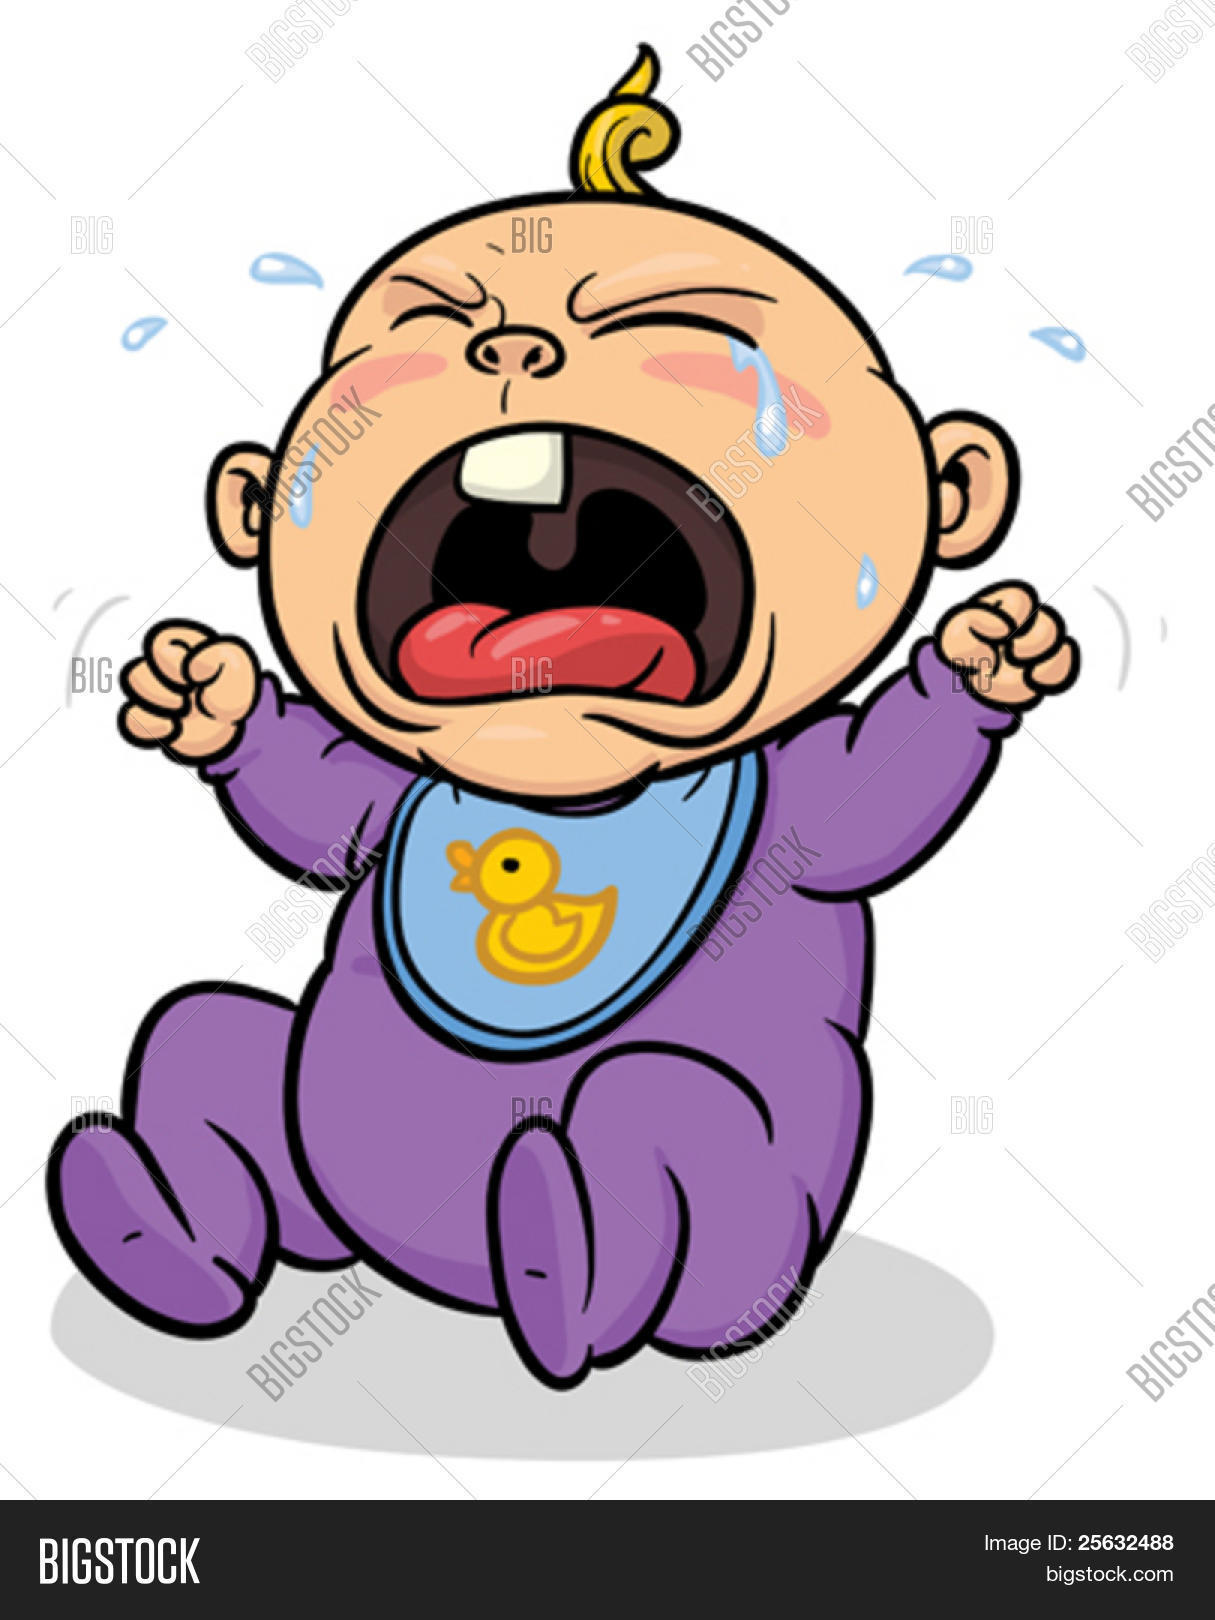 Cartoon Baby Crying Vector & Photo | Bigstock